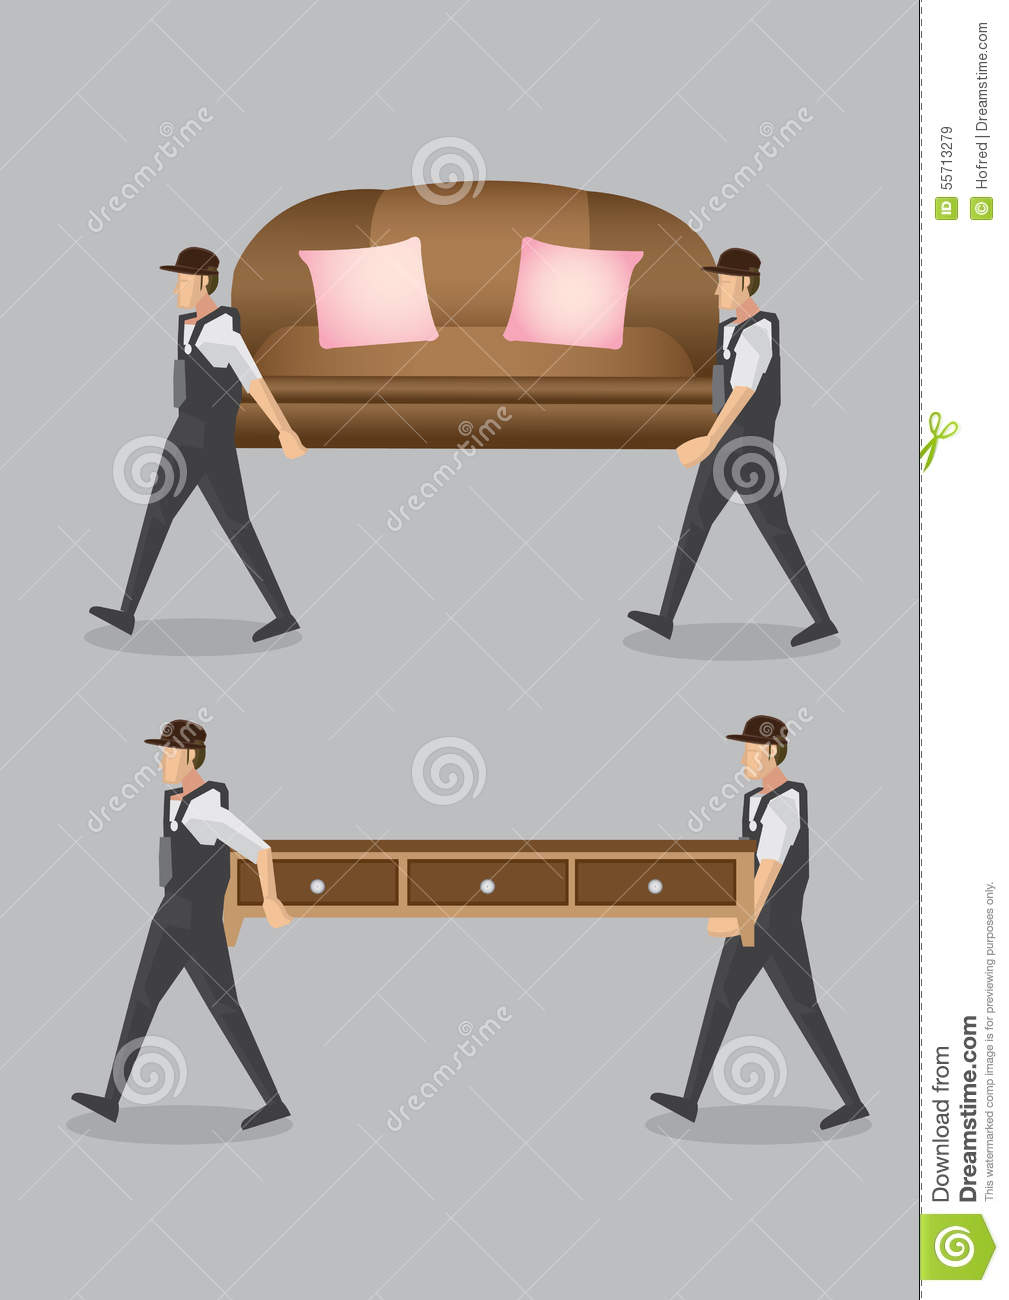 Royalty Free Vector  Download Home Movers Carrying Furniture. Home Movers Carrying Furniture Vector Cartoon Illustration Stock